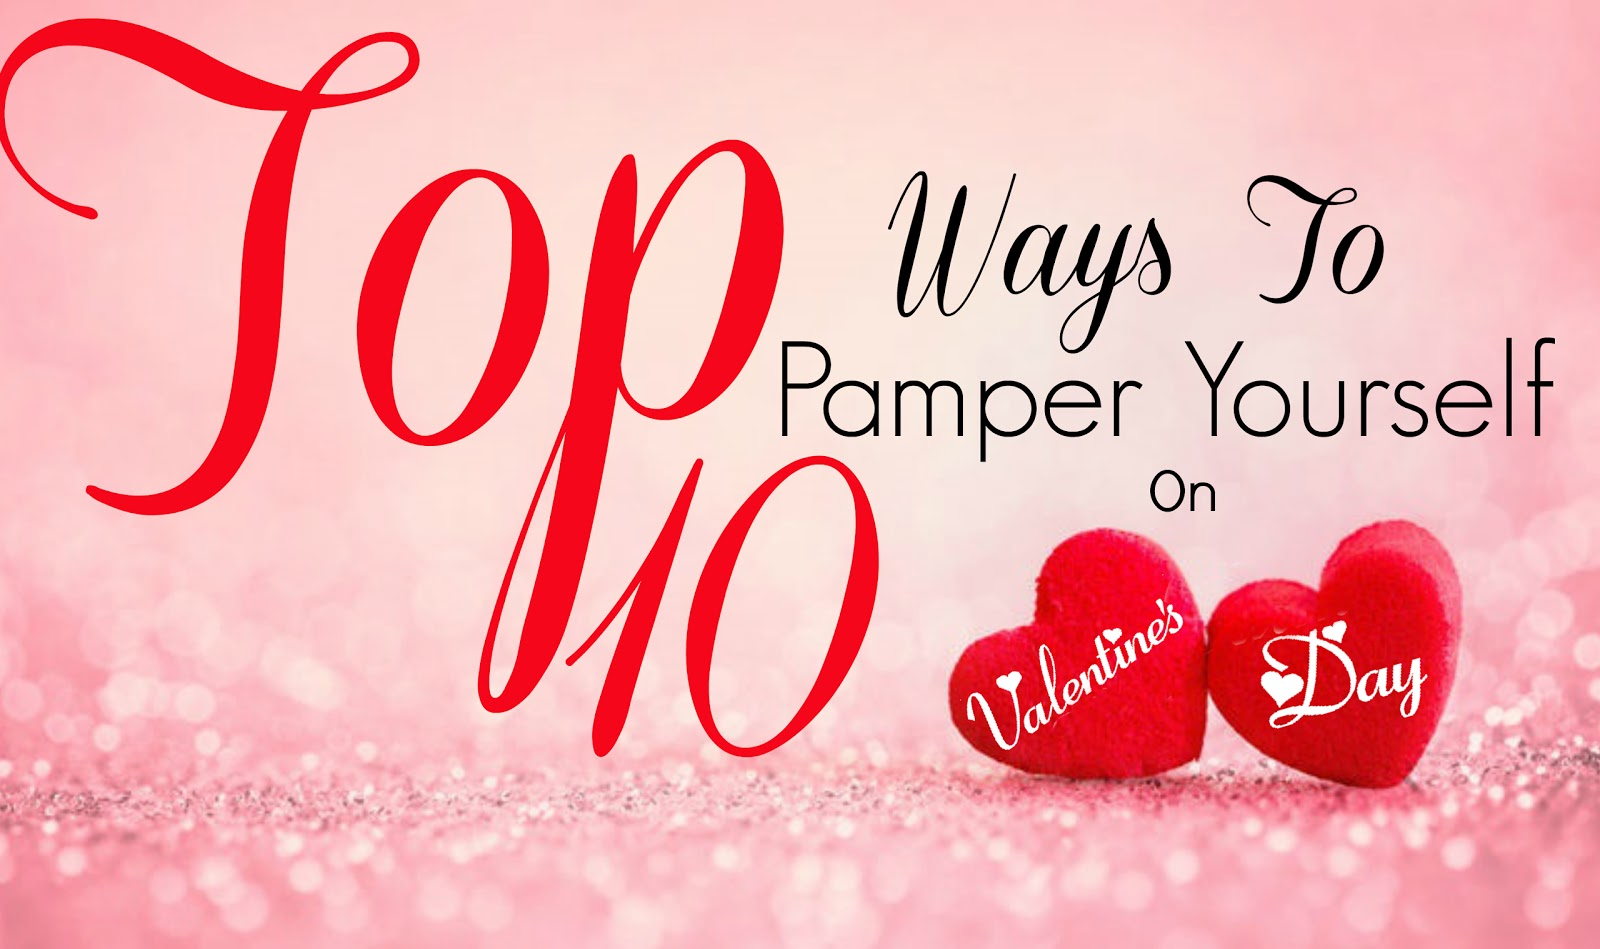 Top 10 ways to pamper yourself on valentines day barbies beauty bits top 10 ways to pamper yourself on valentines day by barbies beauty solutioingenieria Images